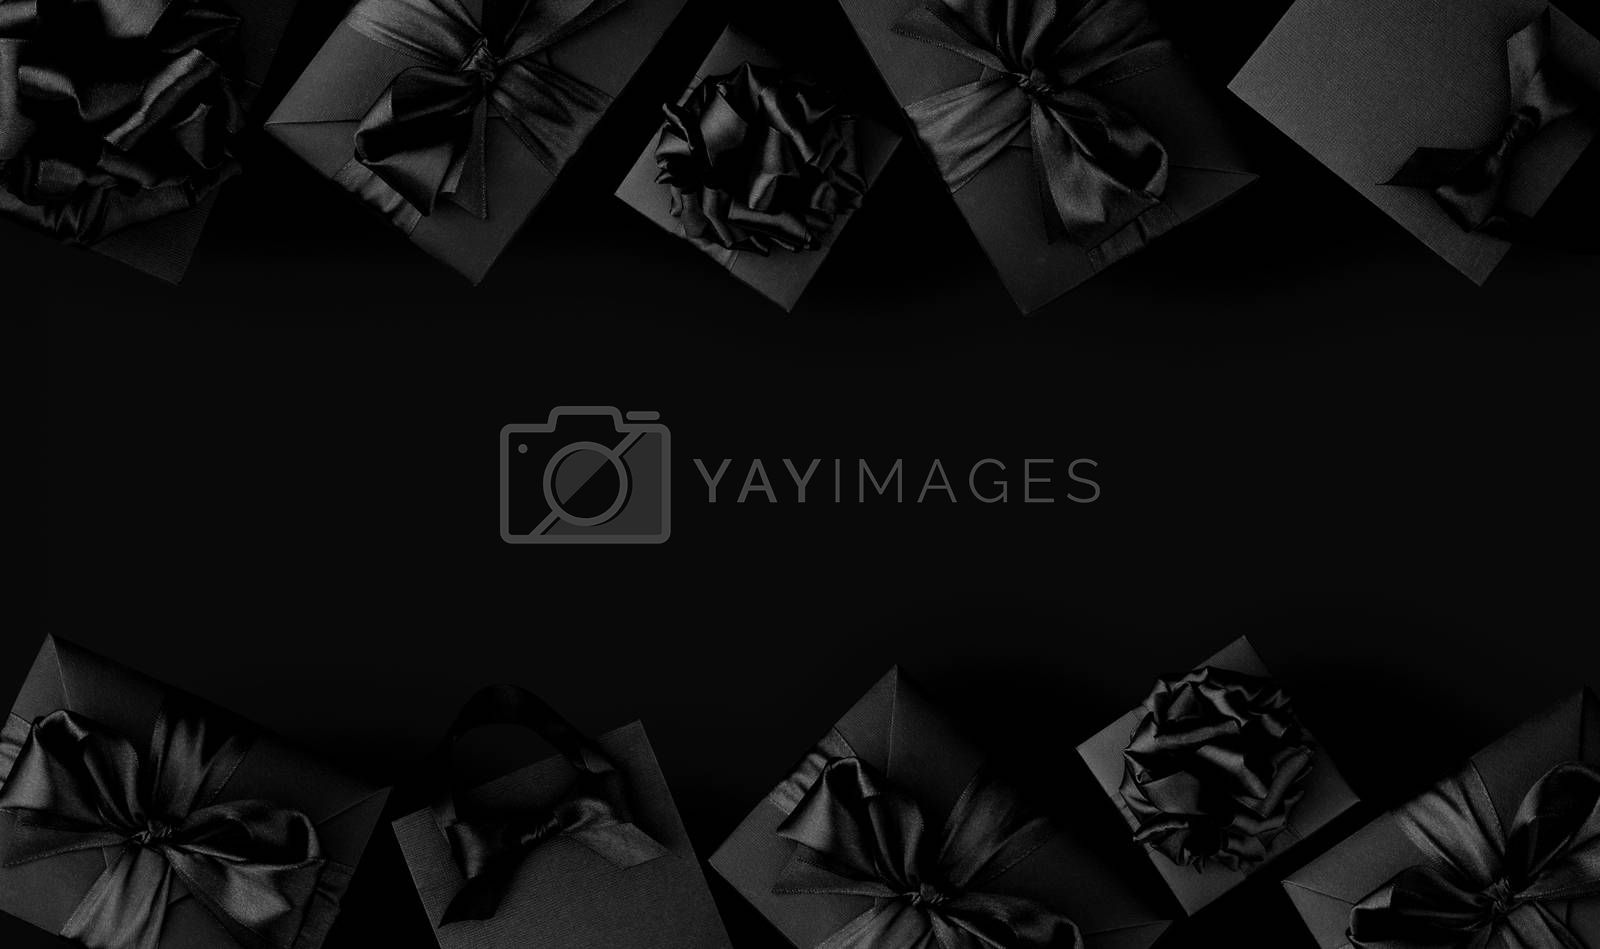 Black shopping bags and gift boxes on black background with copy space for text, Black Friday sale shopping concept